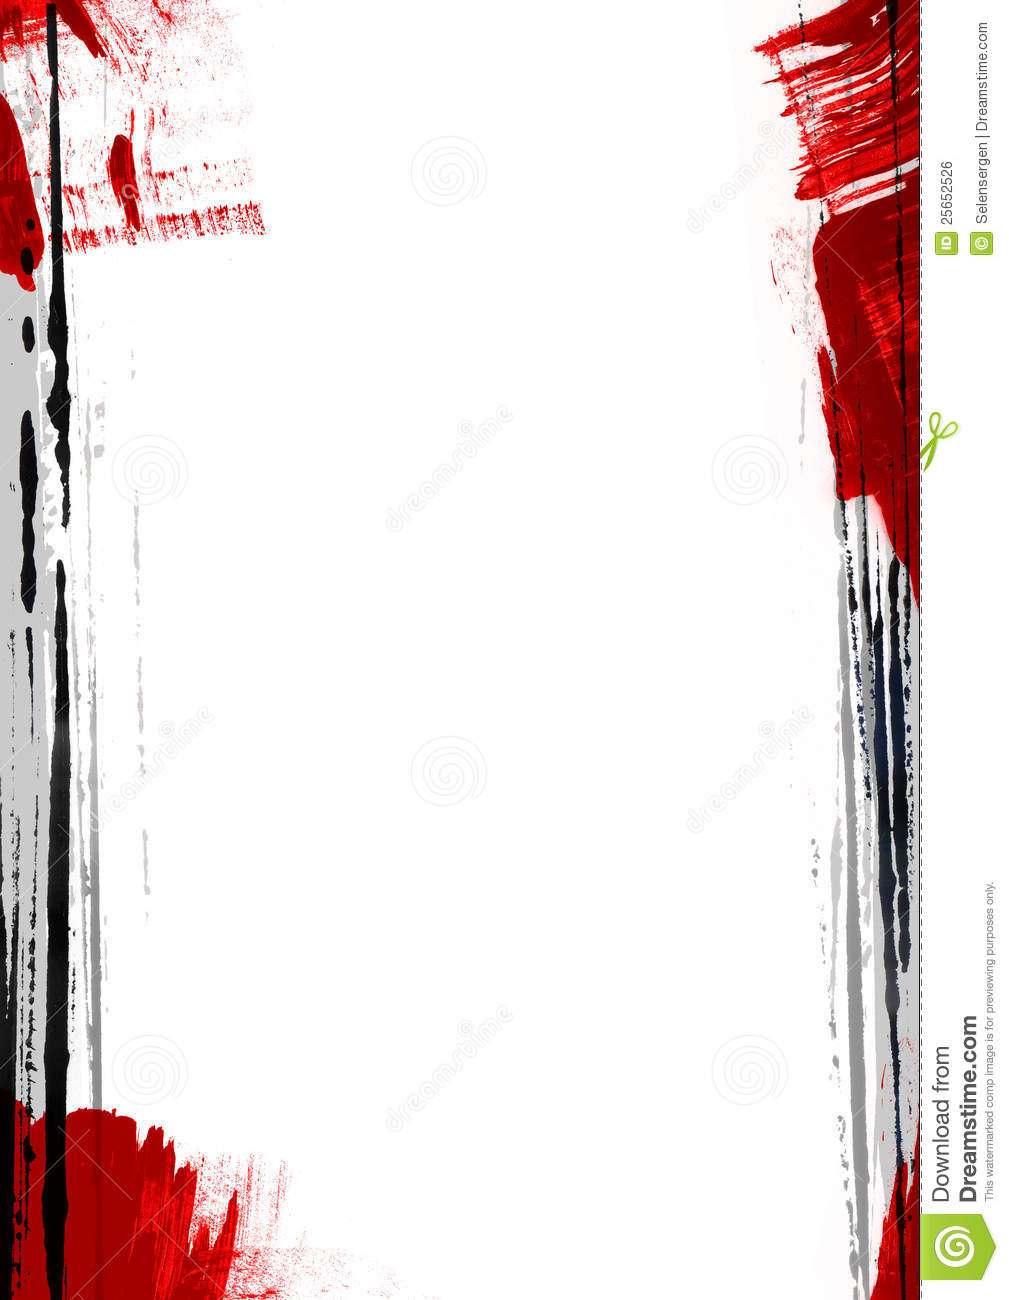 Page Border Painting Royalty Free Stock Image - Image: 25652526